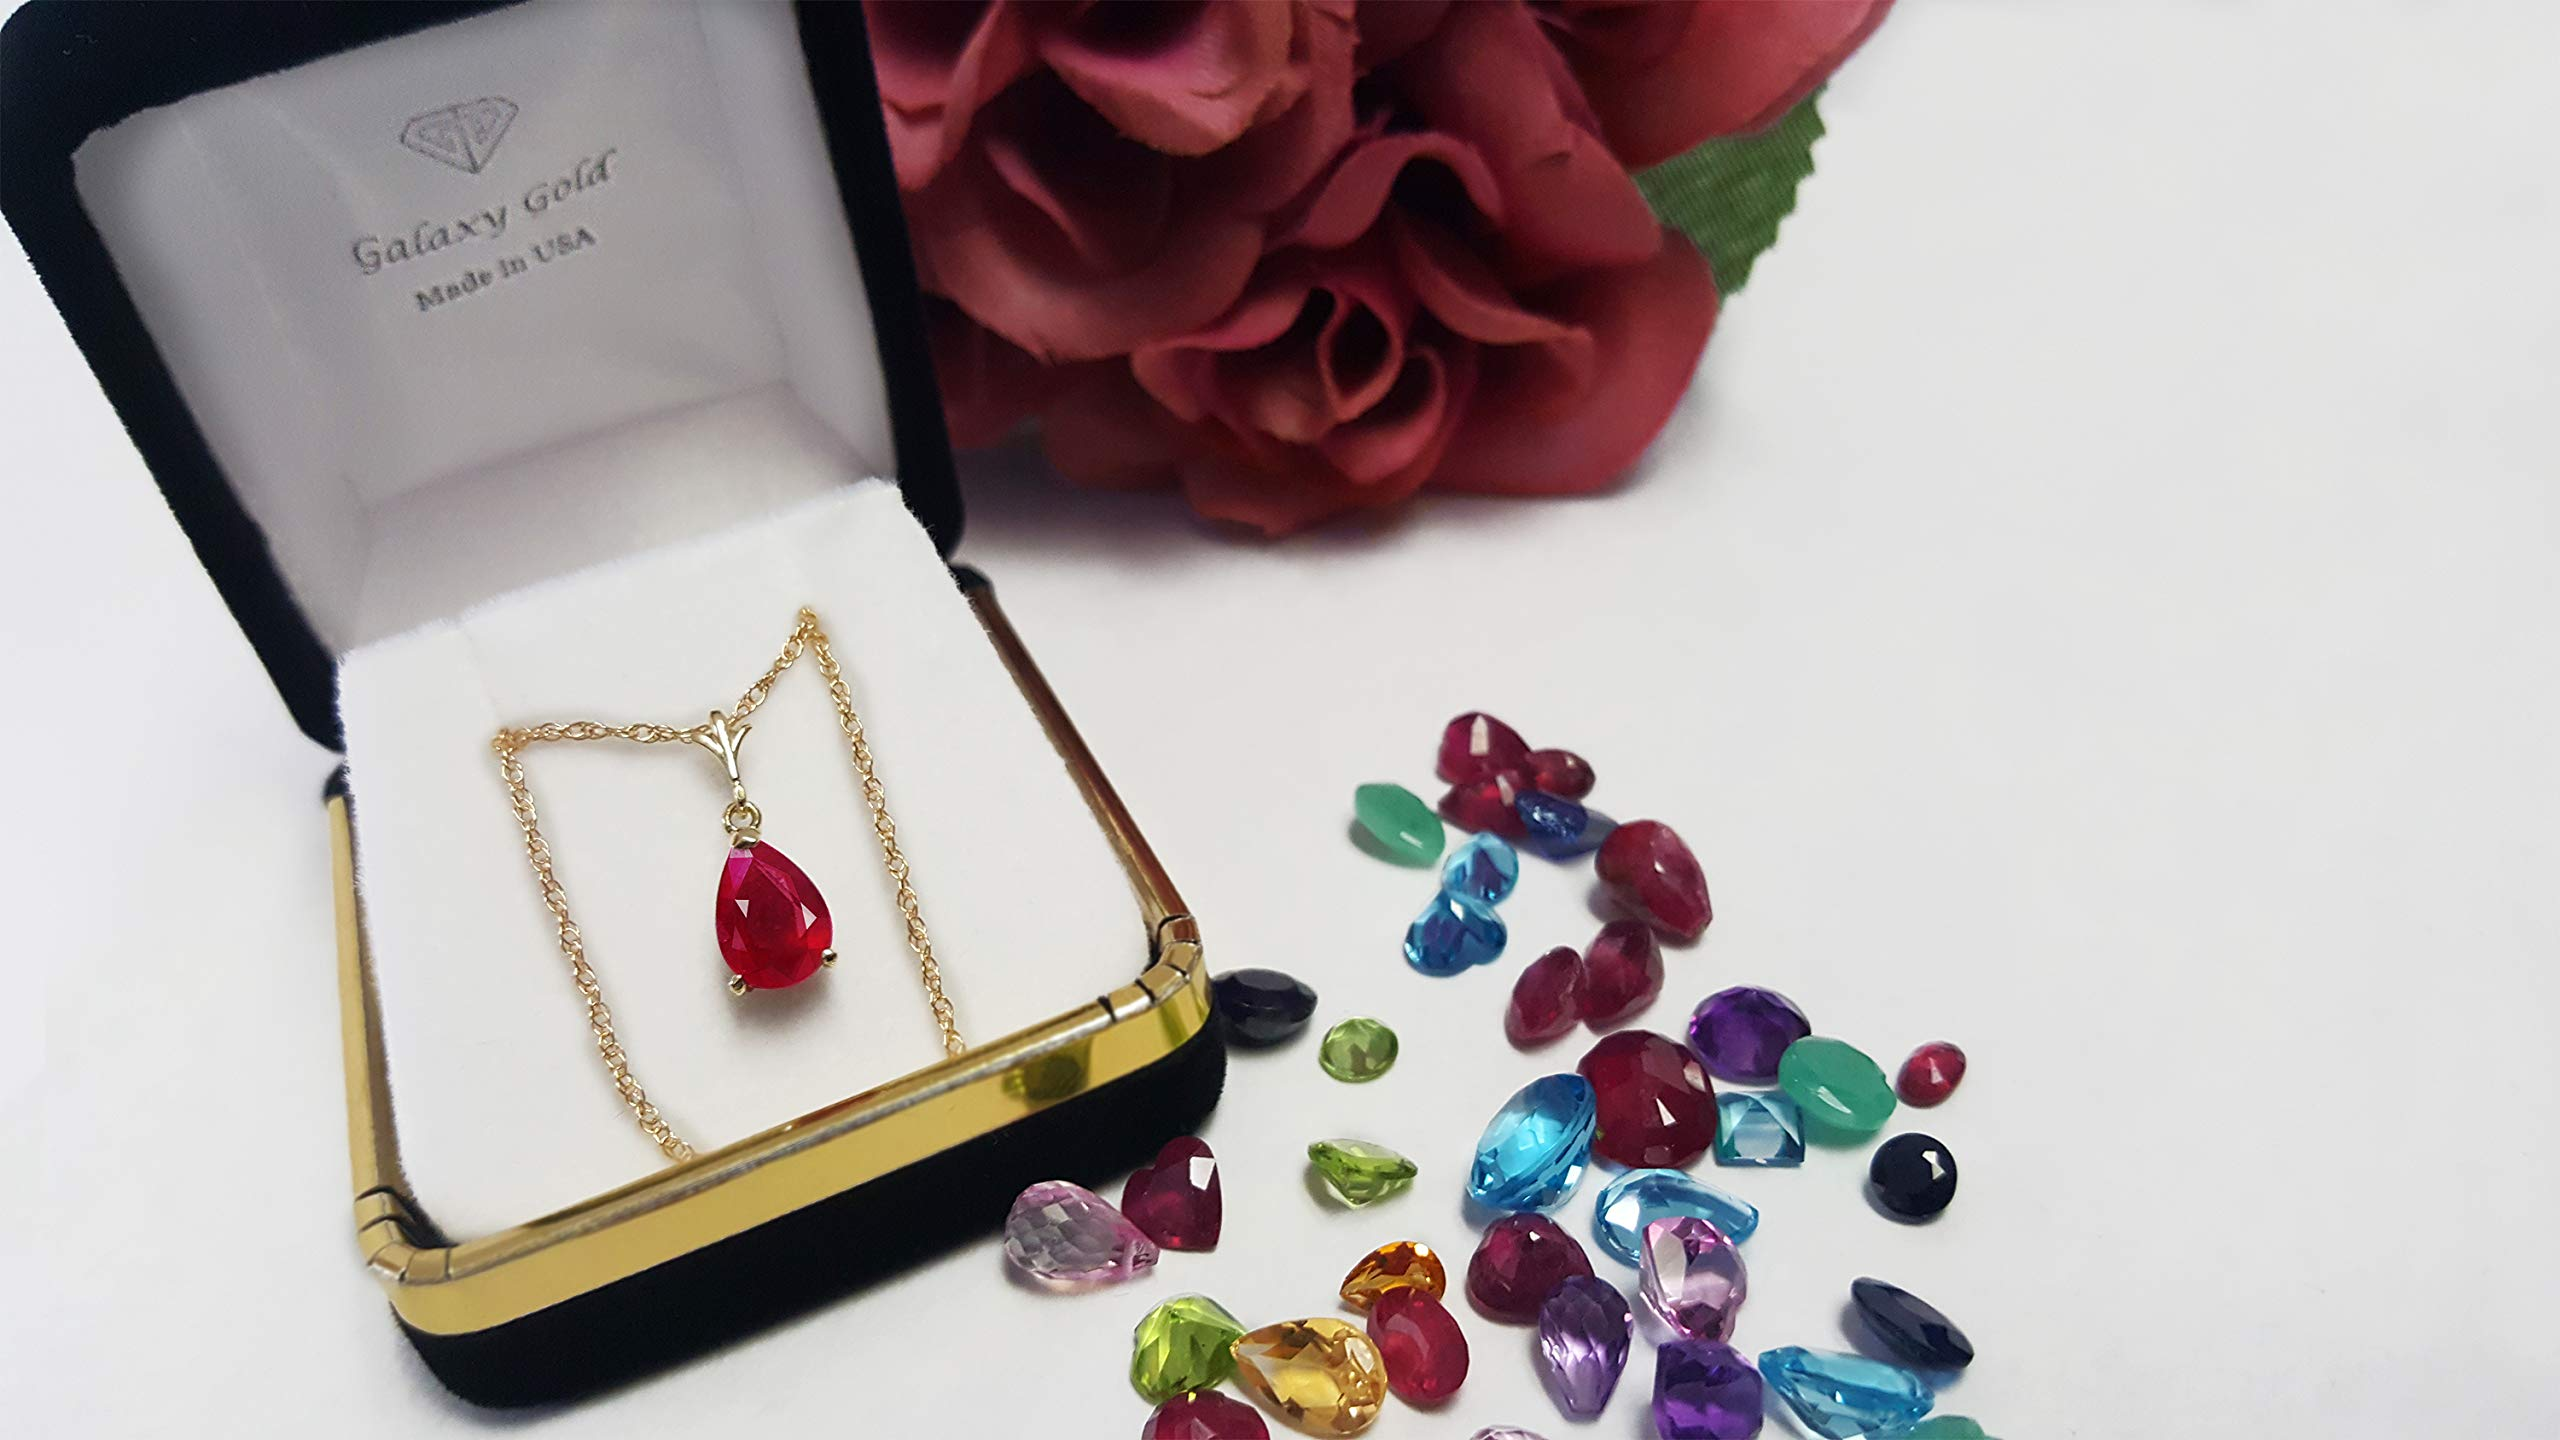 Galaxy Gold 1.75 Carat 14k 18'' Solid Gold Natural Pear-shaped Ruby Drop Pendant Necklace by Galaxy Gold (Image #5)